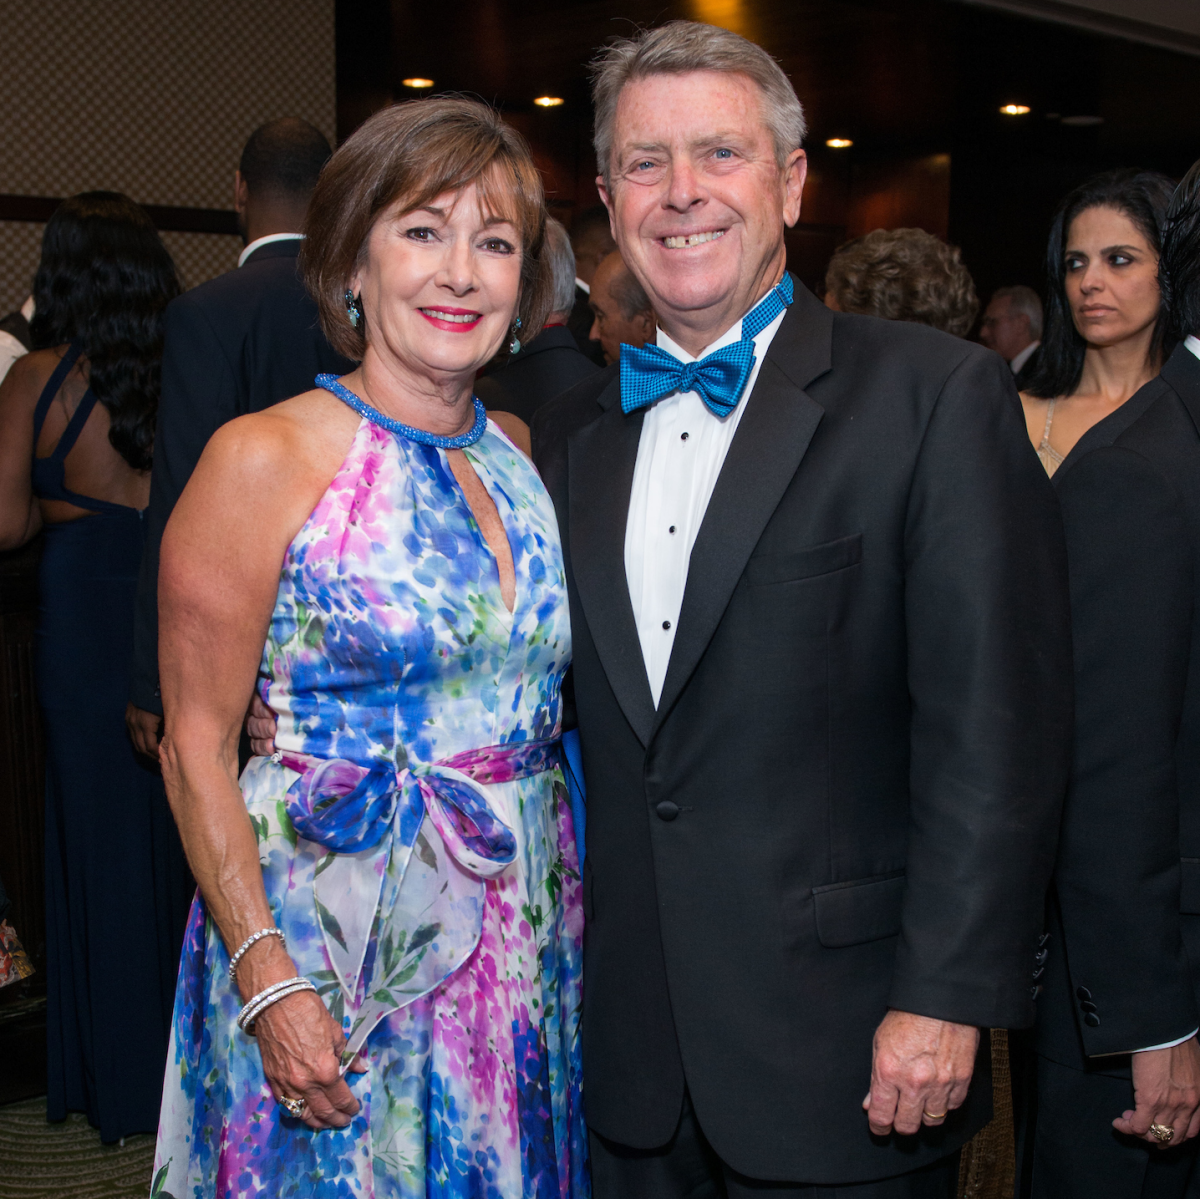 Cathy and Joe Cleary at Memorial Hermann Gala